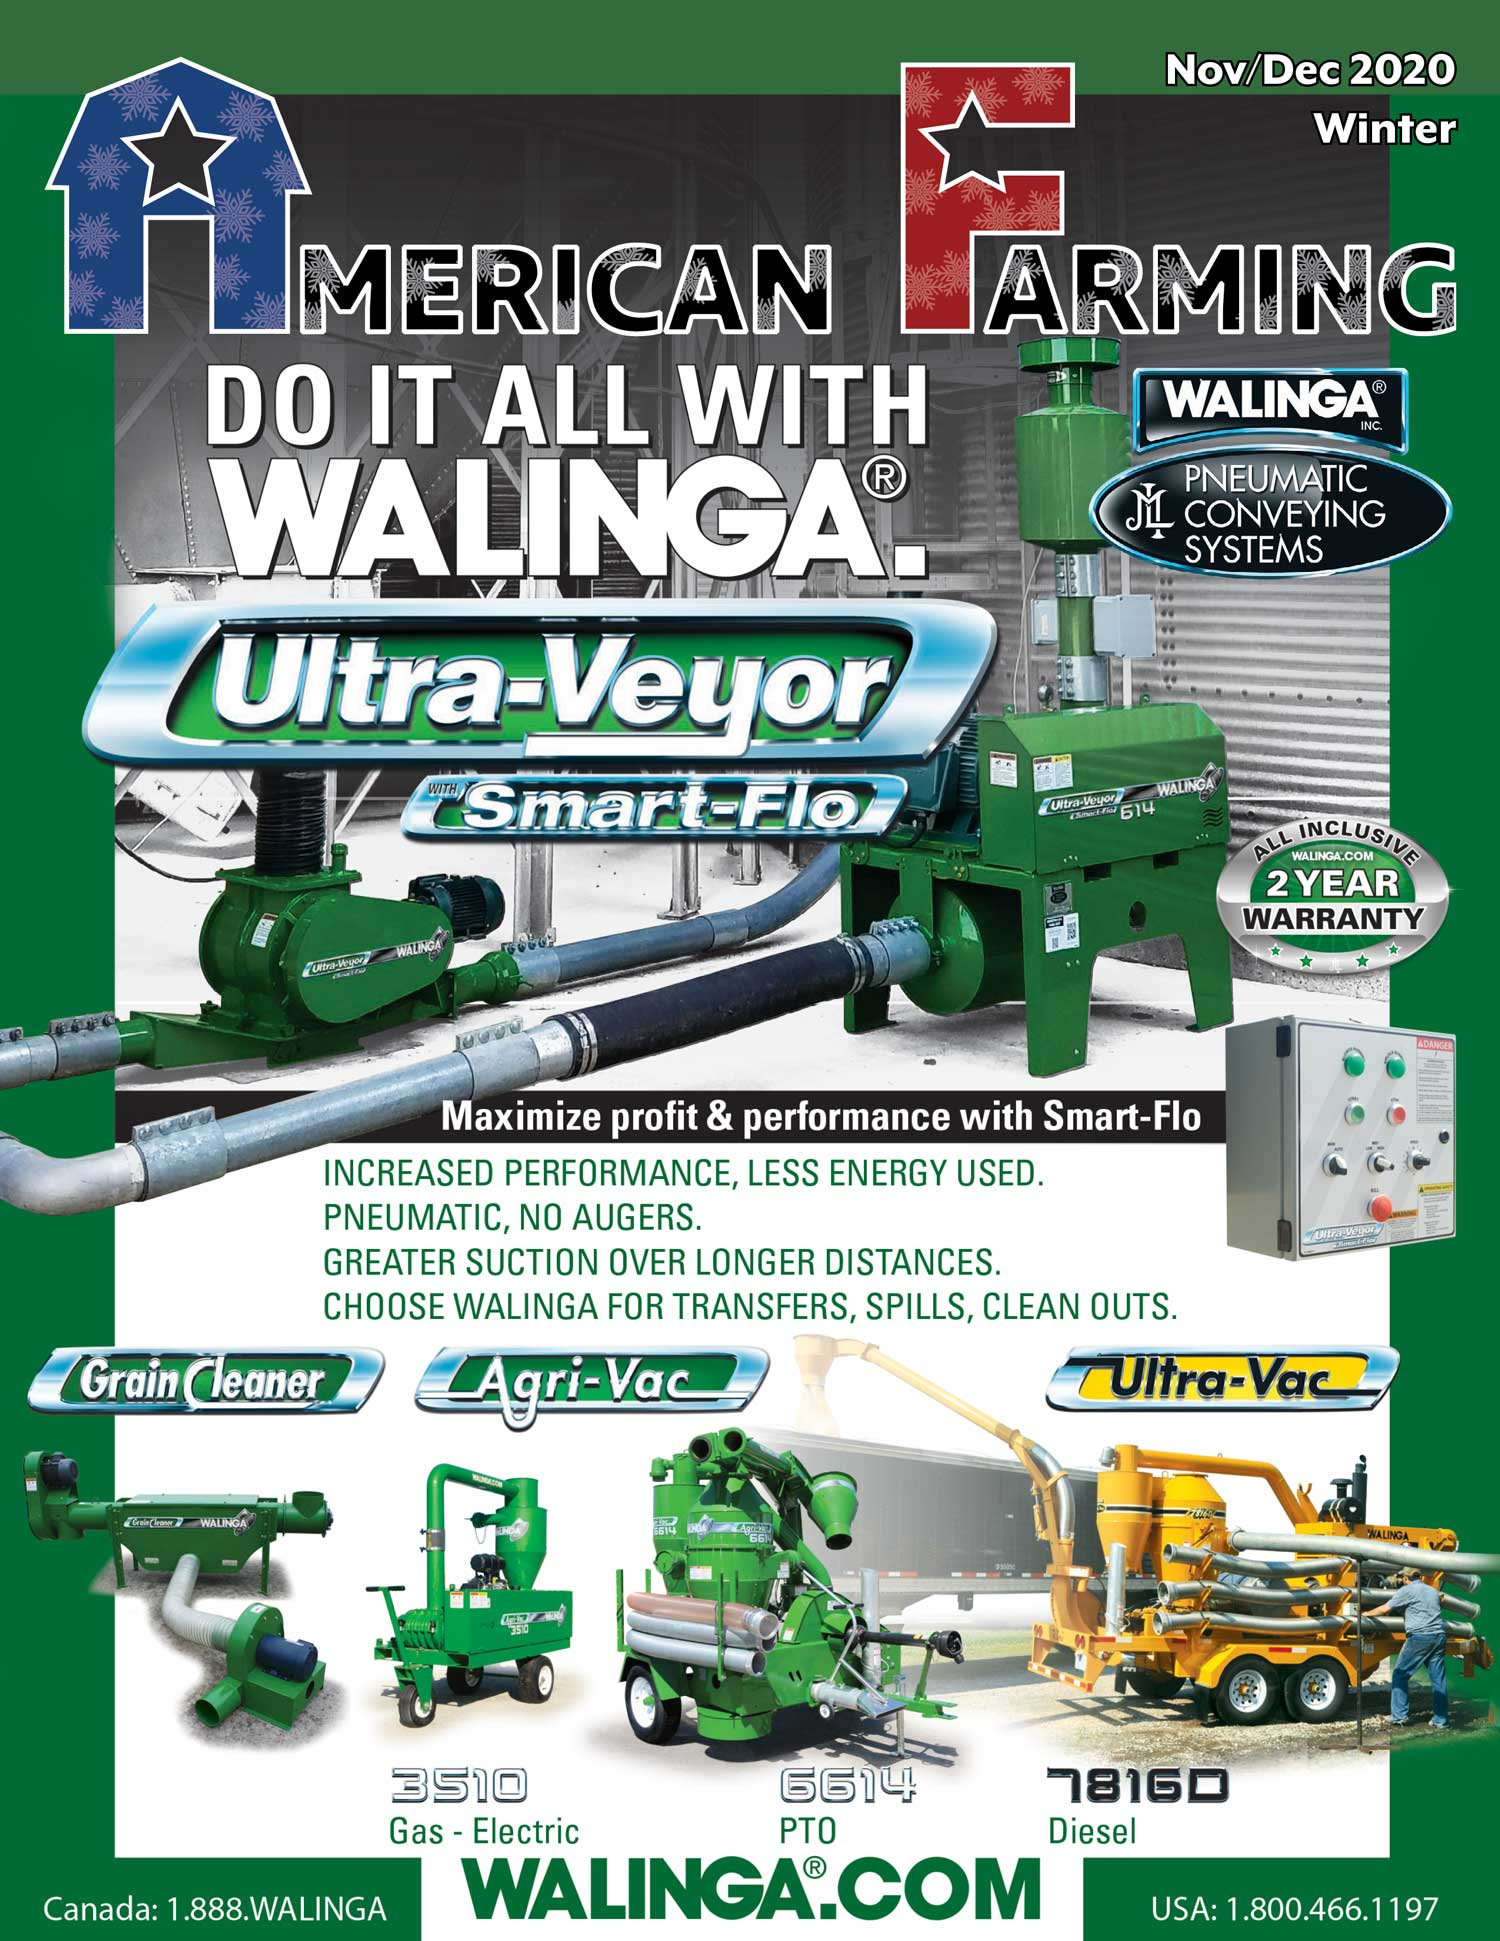 American Farming Publication Winter 2020 Cover www.Walinga.com